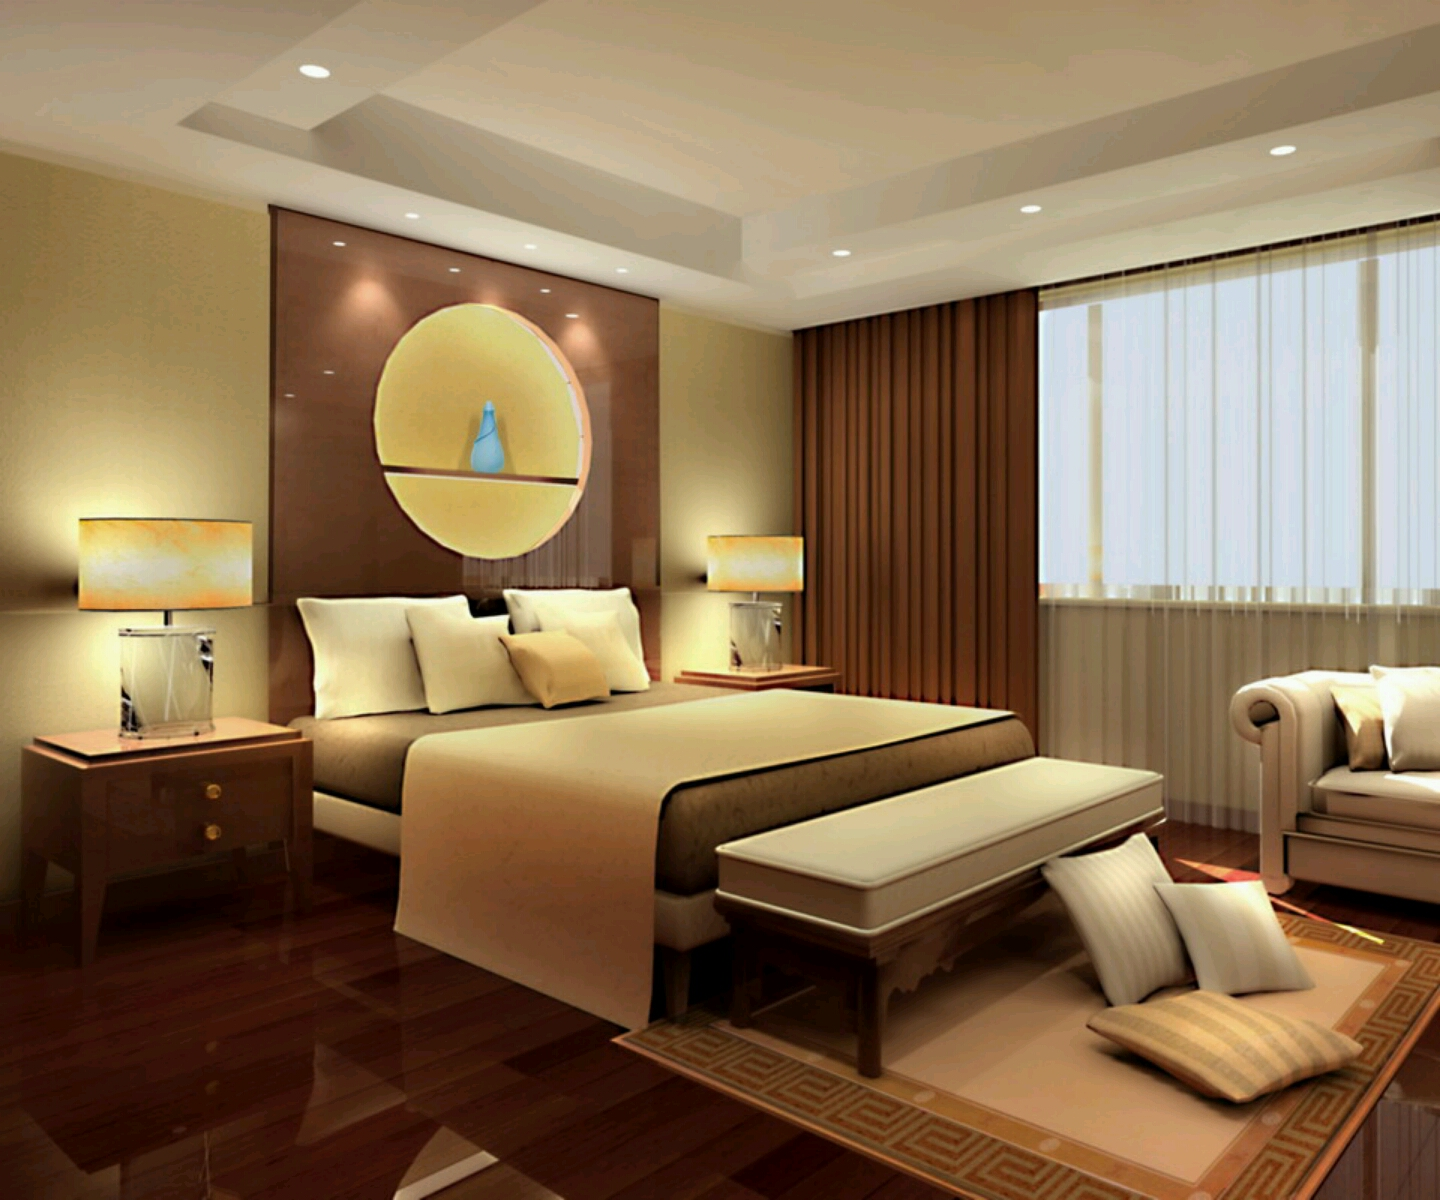 New home designs latest modern beautiful bedrooms for Modern bedroom designs